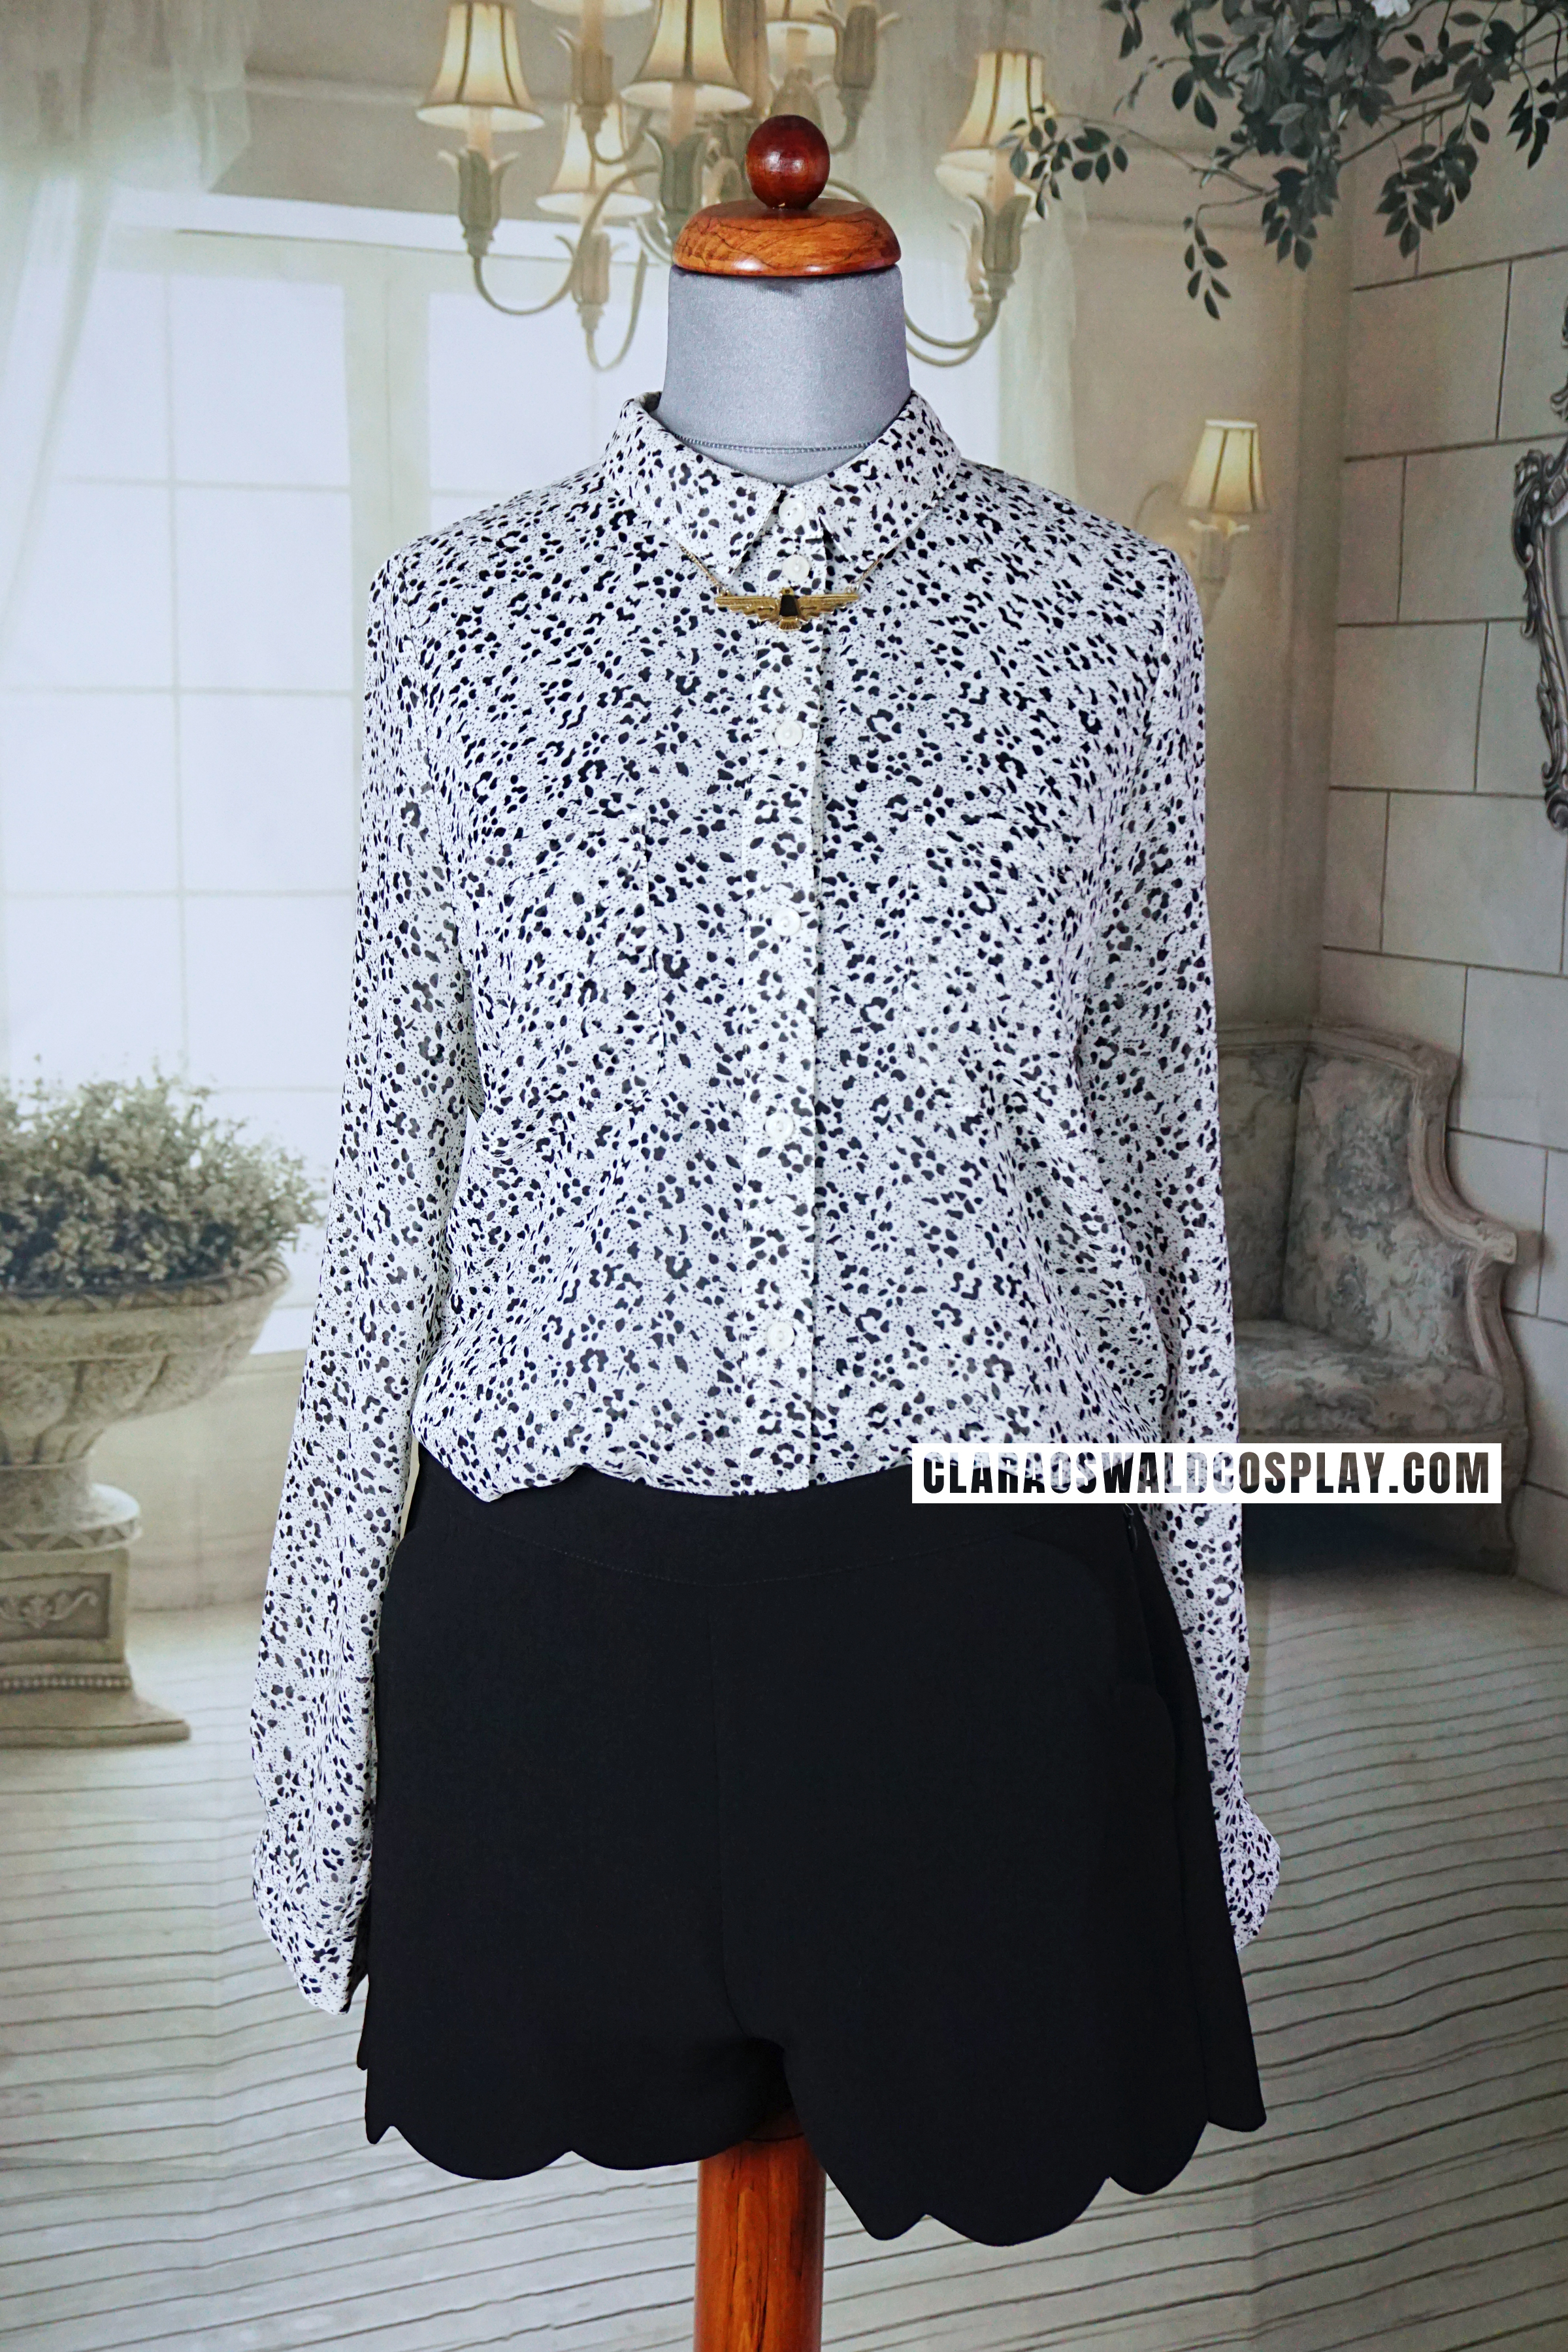 Clara Oswald's Urban Outfitters Sparkle & Fade Animal Print Blouse as seen in Bells of Saint John